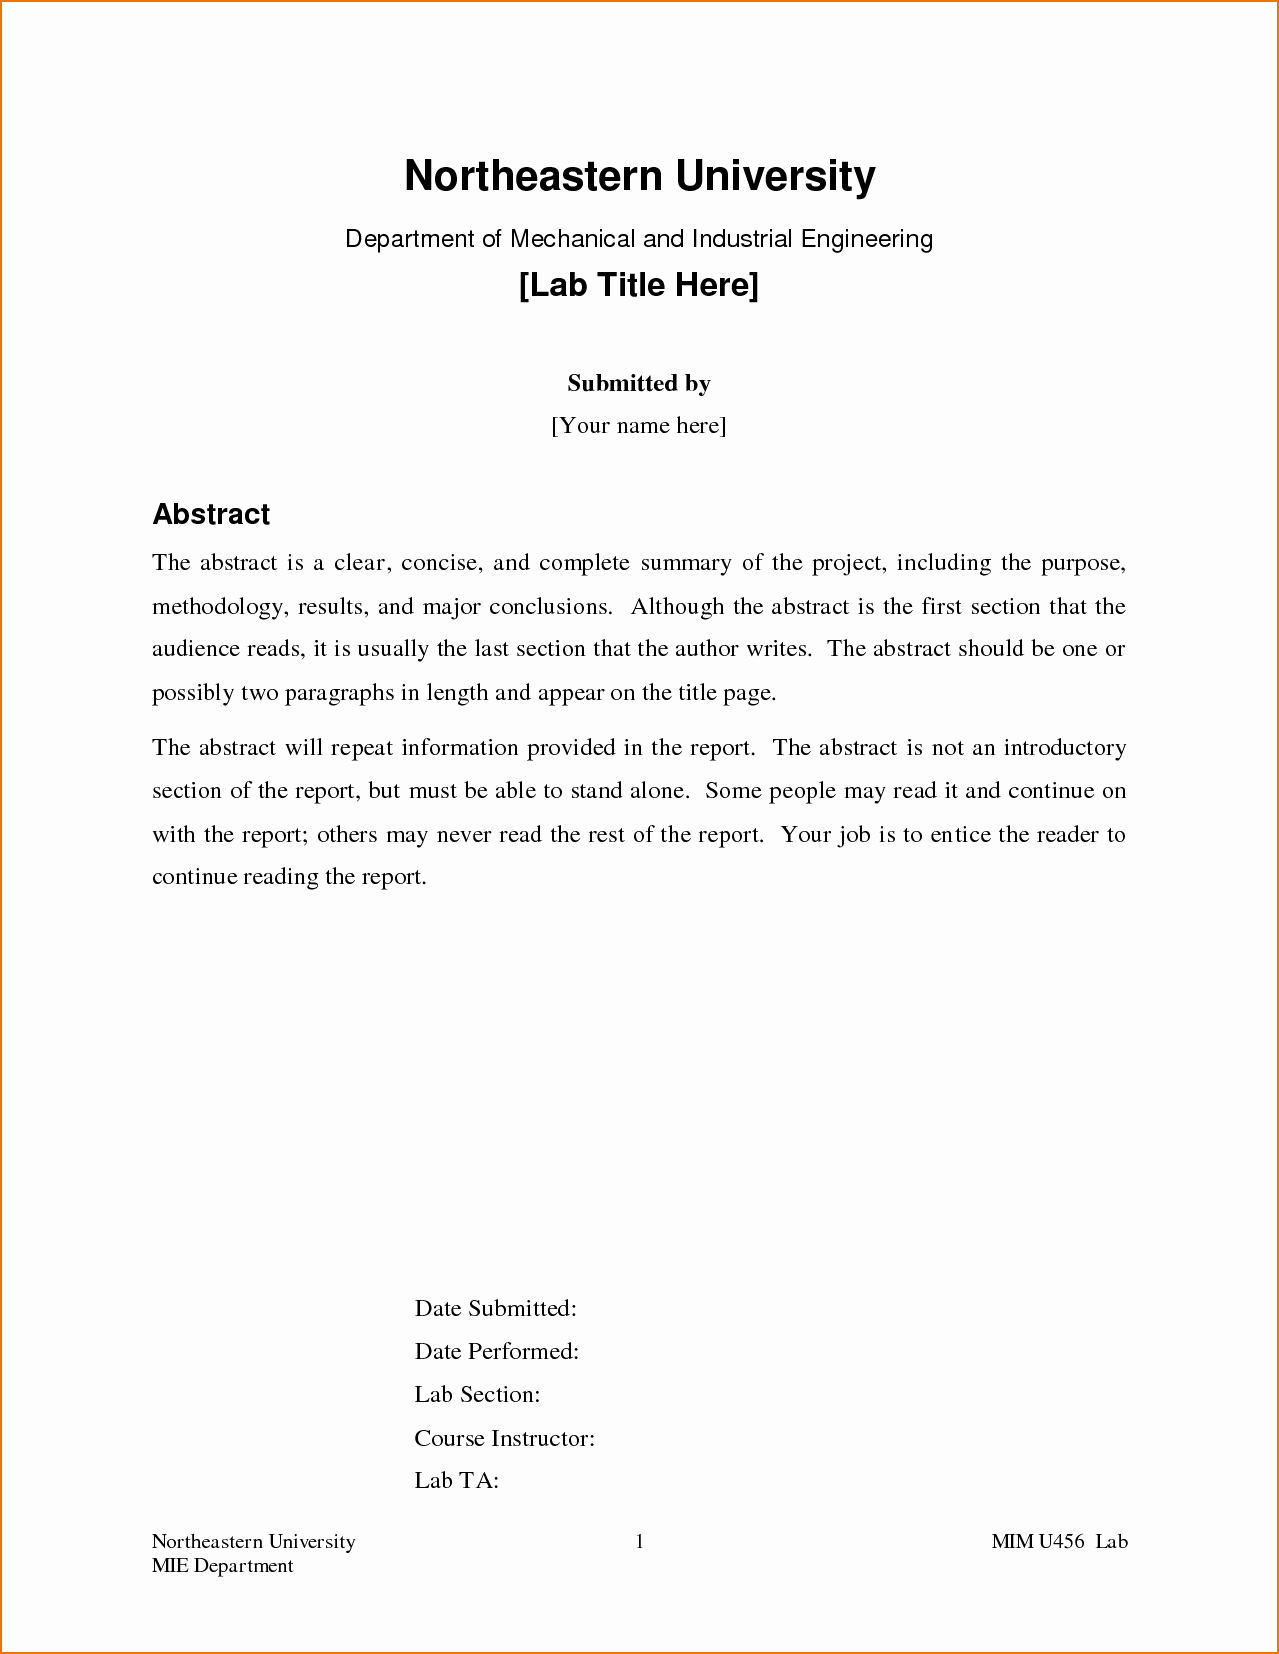 Formal Lab Report Template Elegant How to Write A formal Lab Report Abstract I Ghostwrite